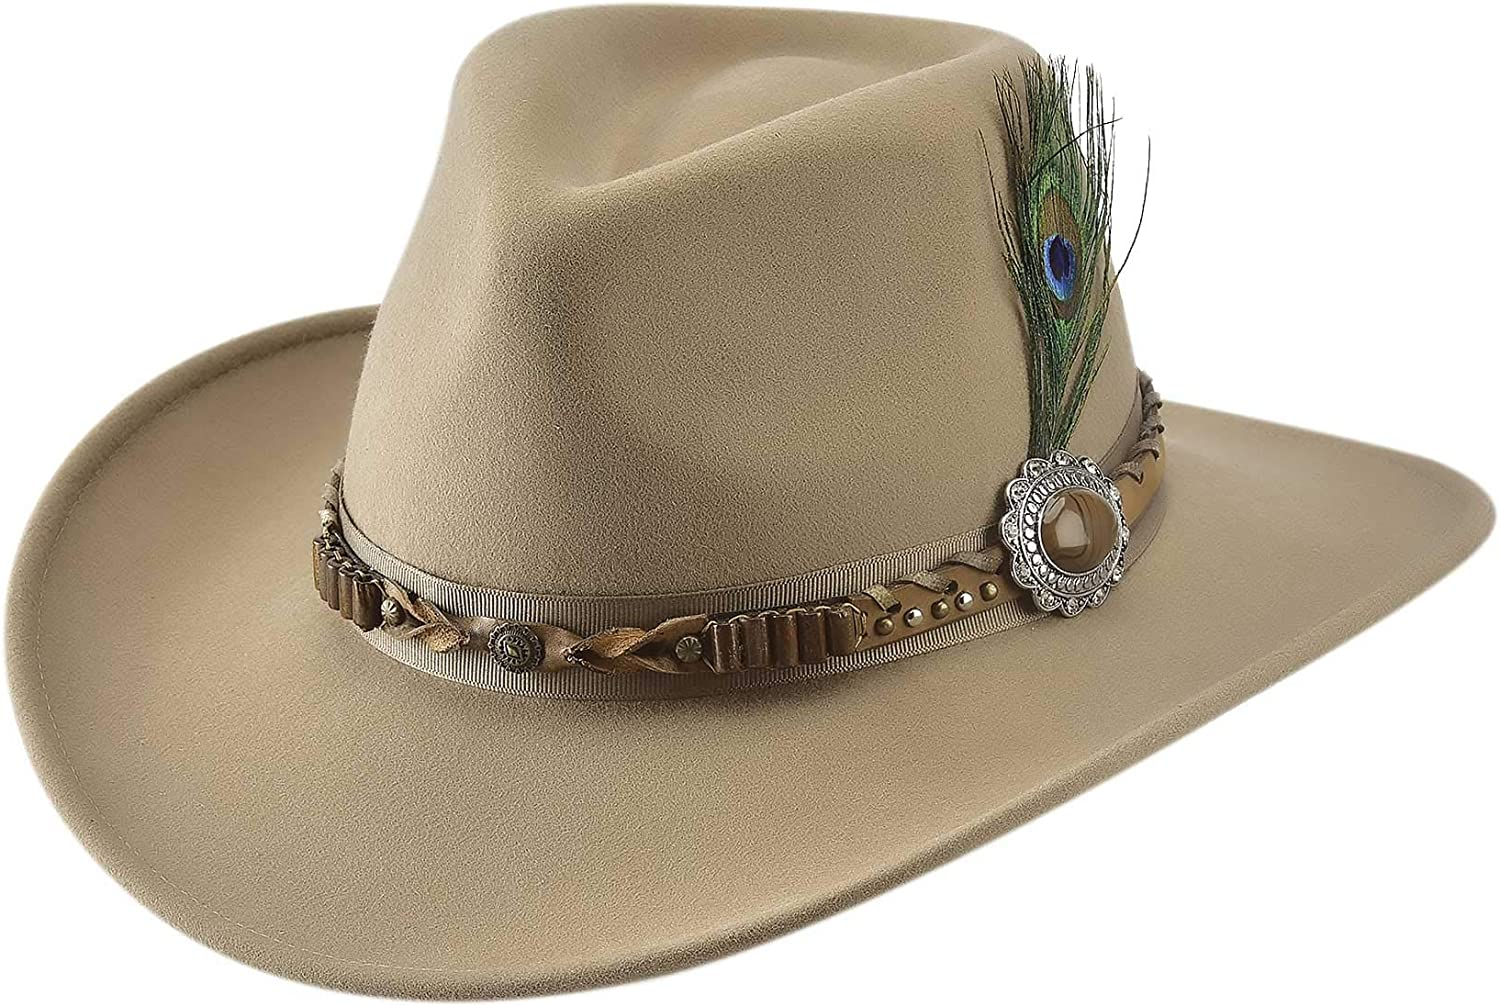 Bullhide shop Rumours Premium Wool Western Max 40% OFF Couture Hat Cowboy Camel I